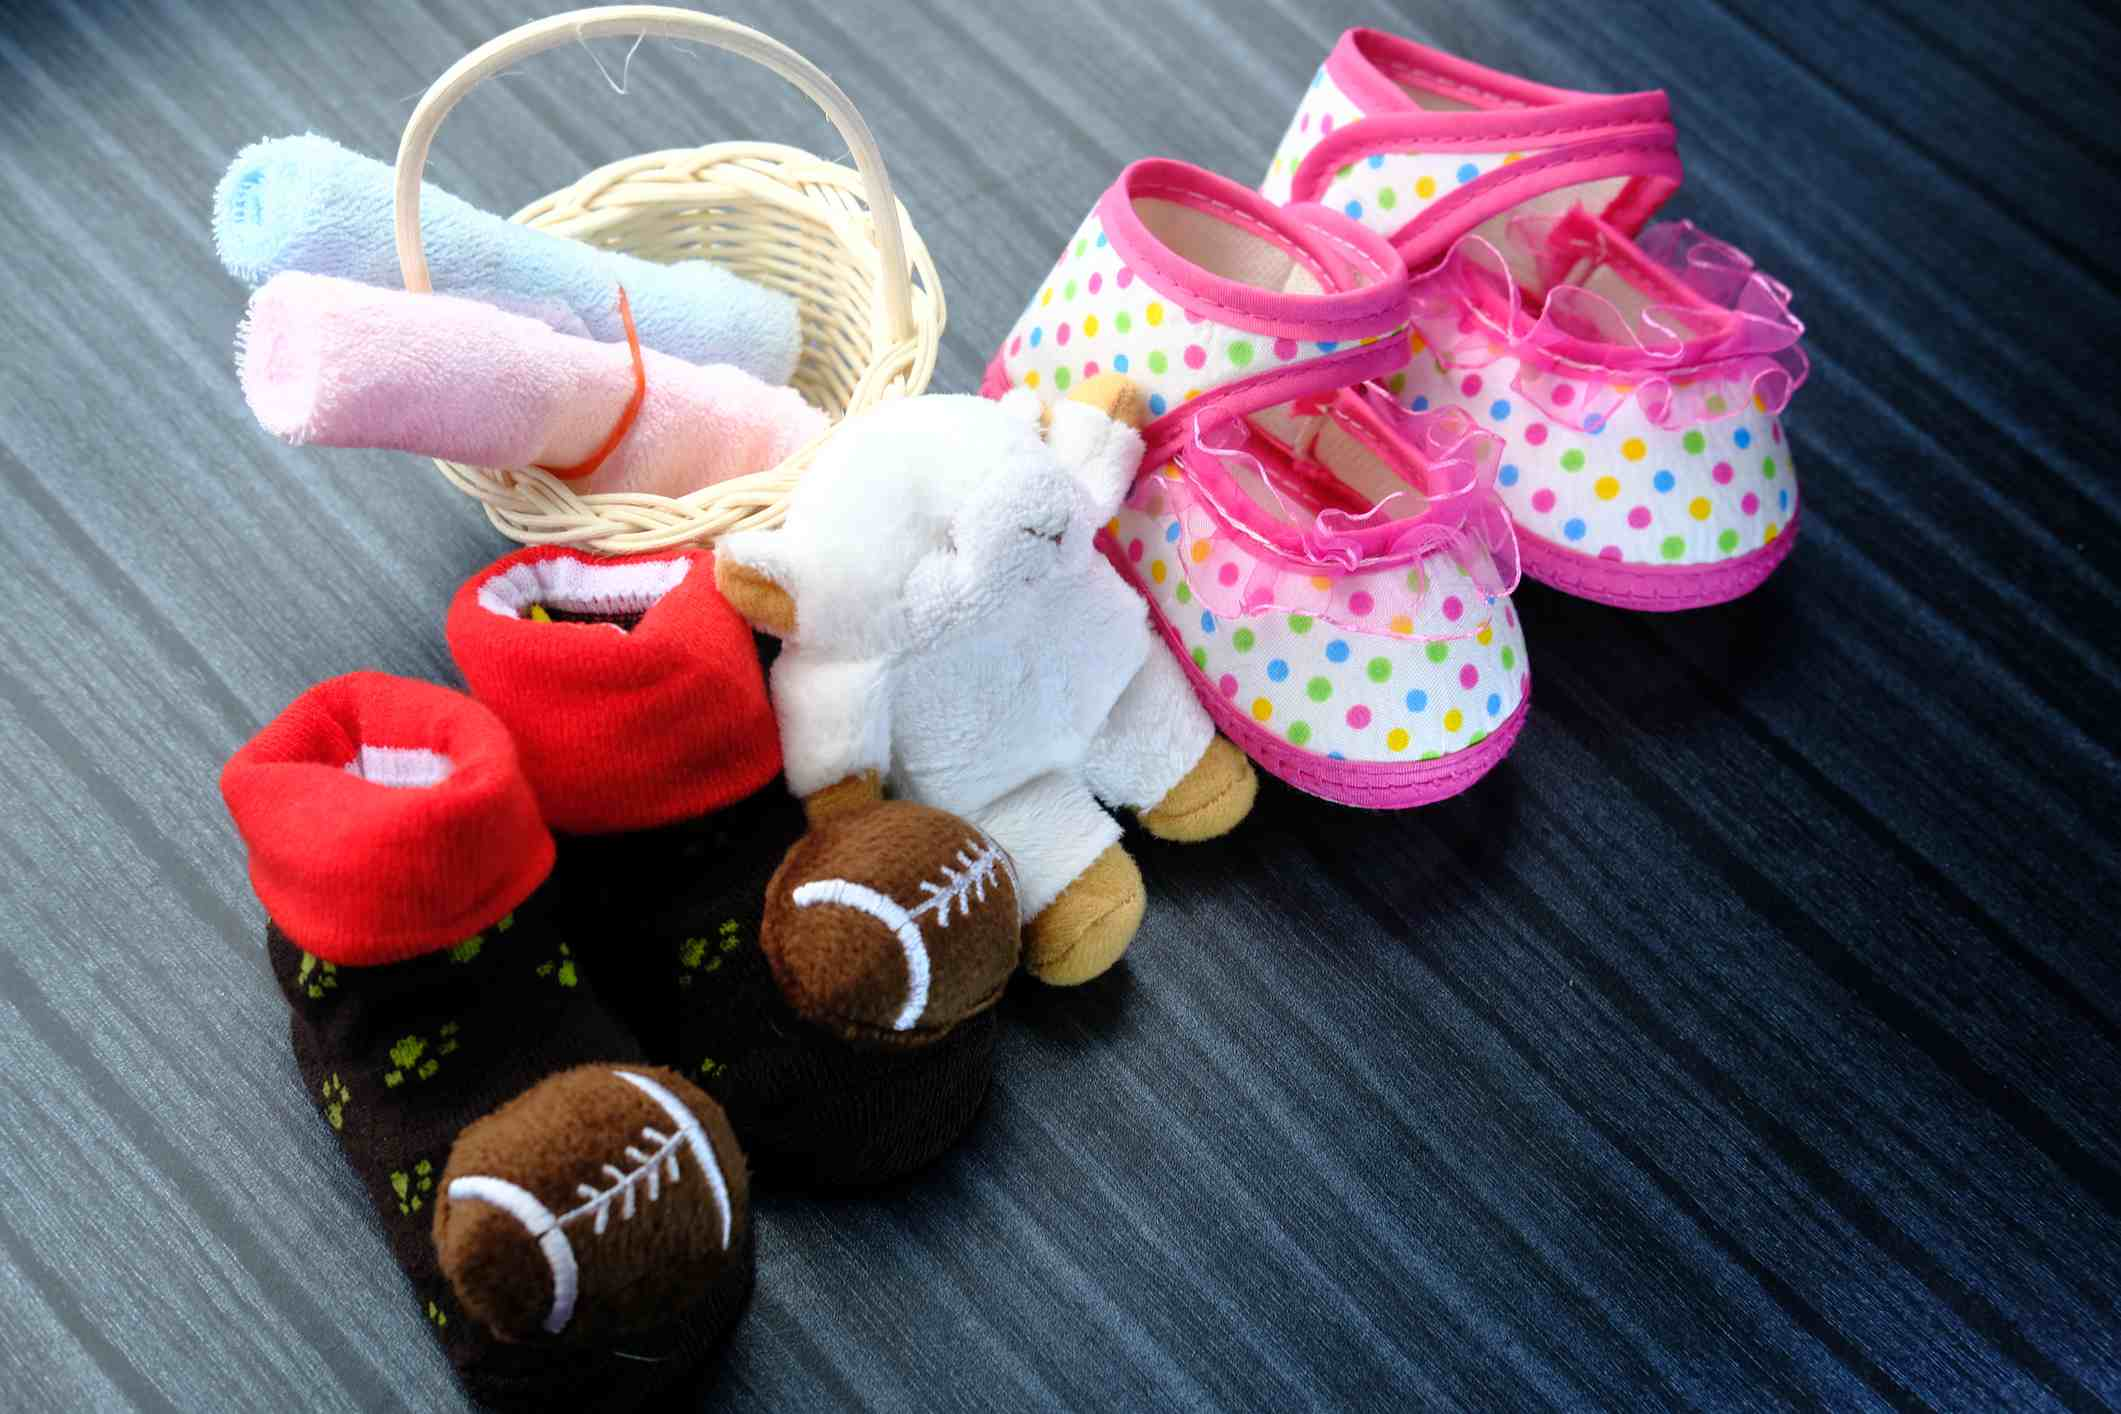 Two pairs of baby booties and a stuffed animal